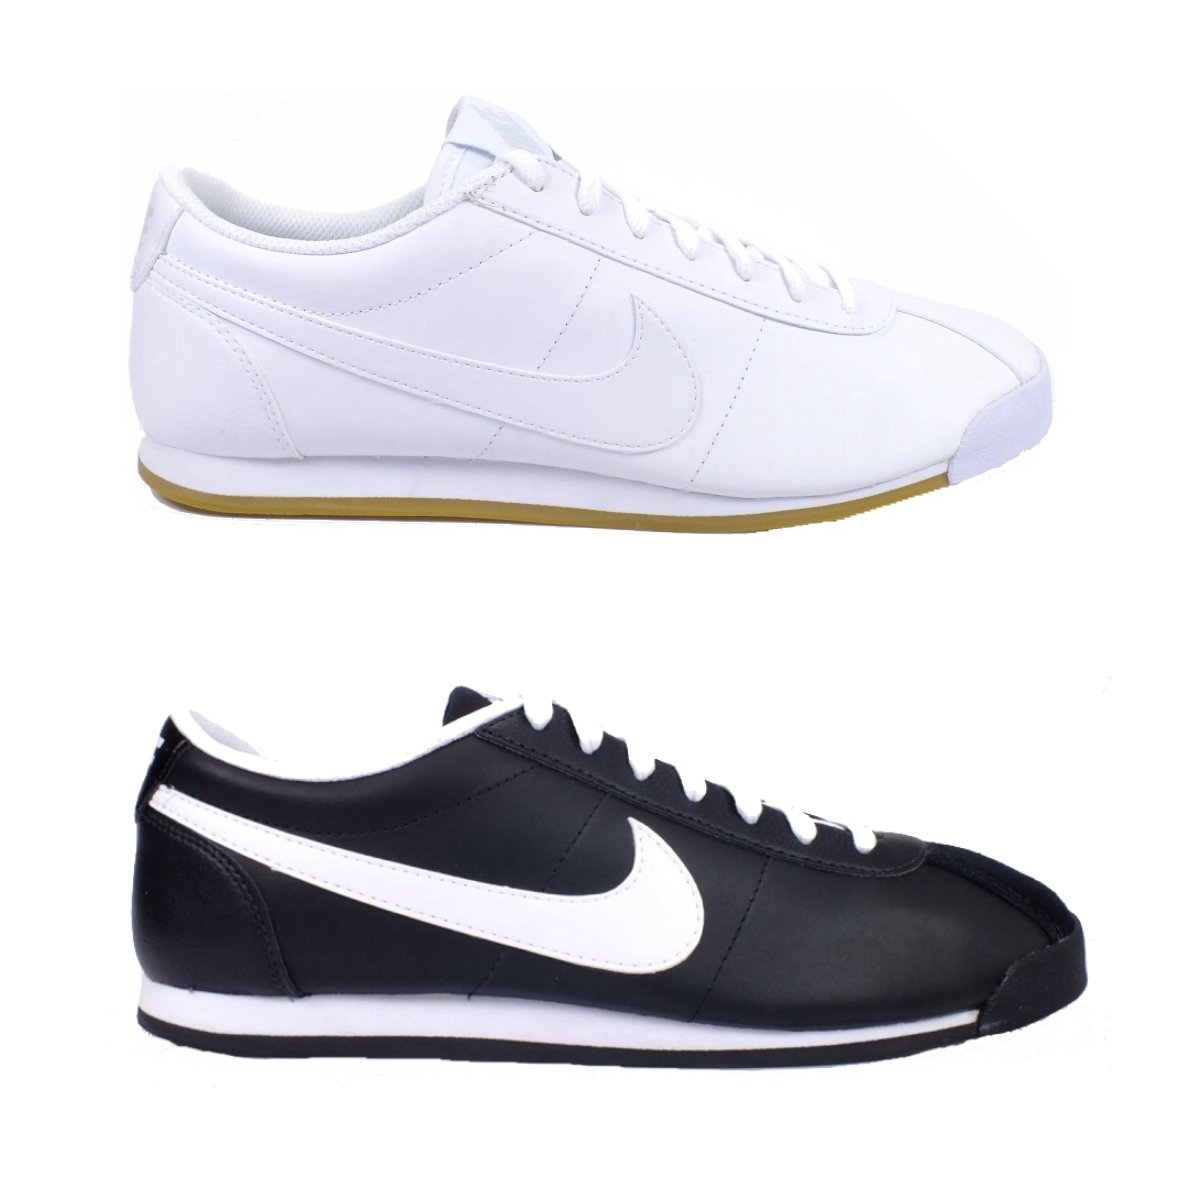 nike riviera leather leder schuhe sneaker herren schwarz wei ebay. Black Bedroom Furniture Sets. Home Design Ideas